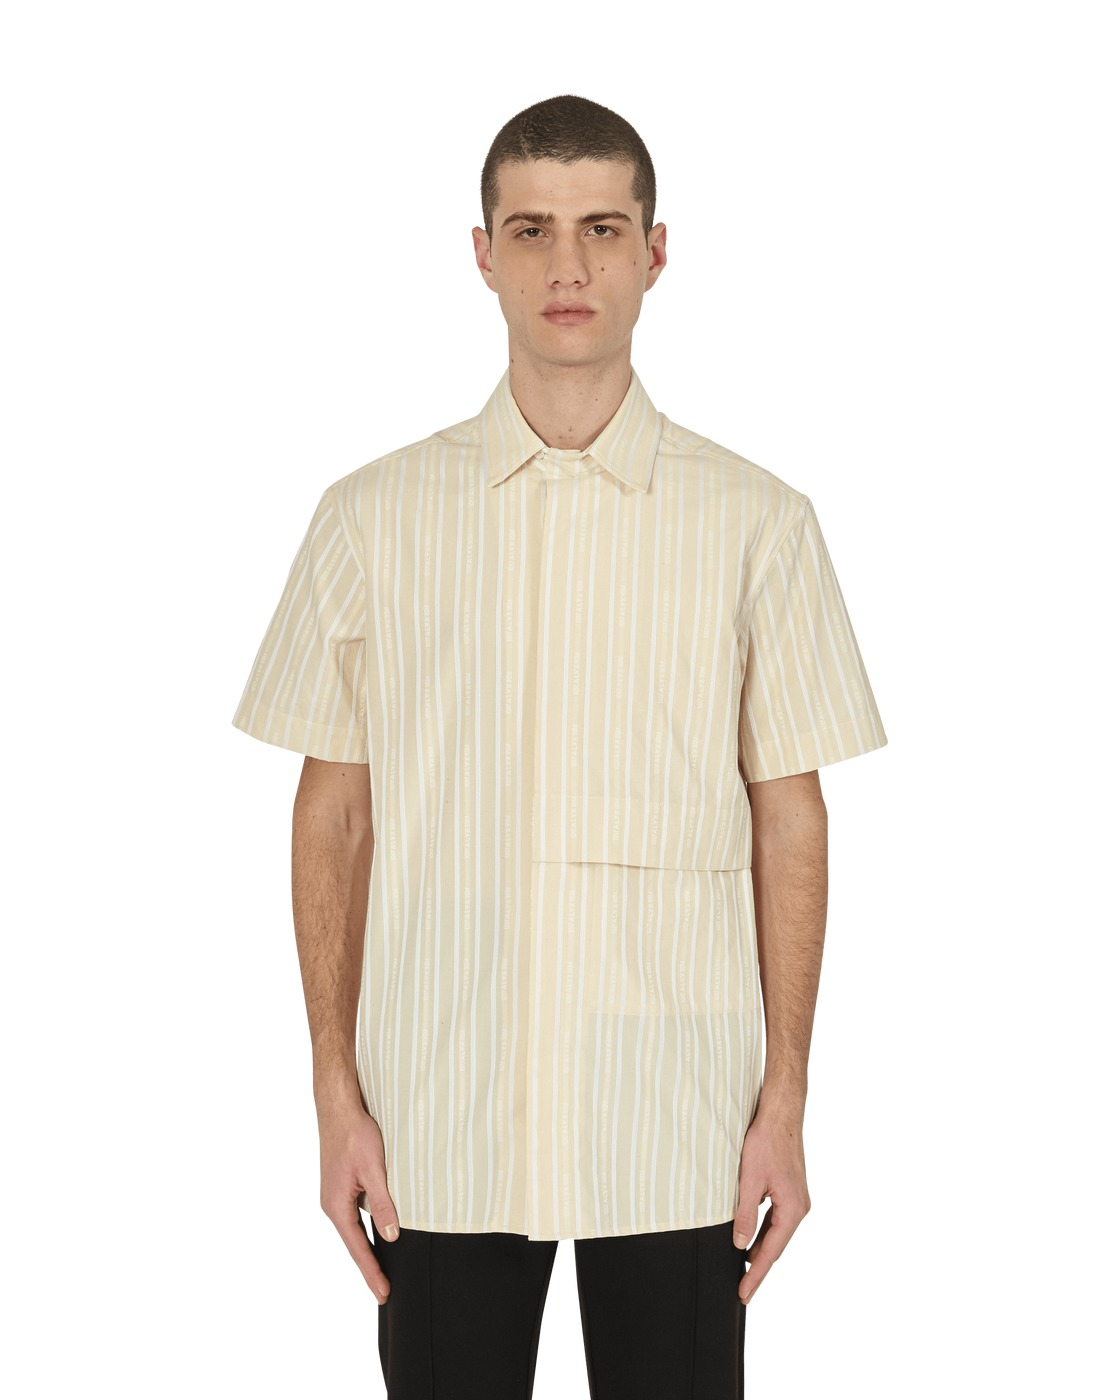 Photo: 1017 Alyx 9sm Button Up Egde Shirt Tan